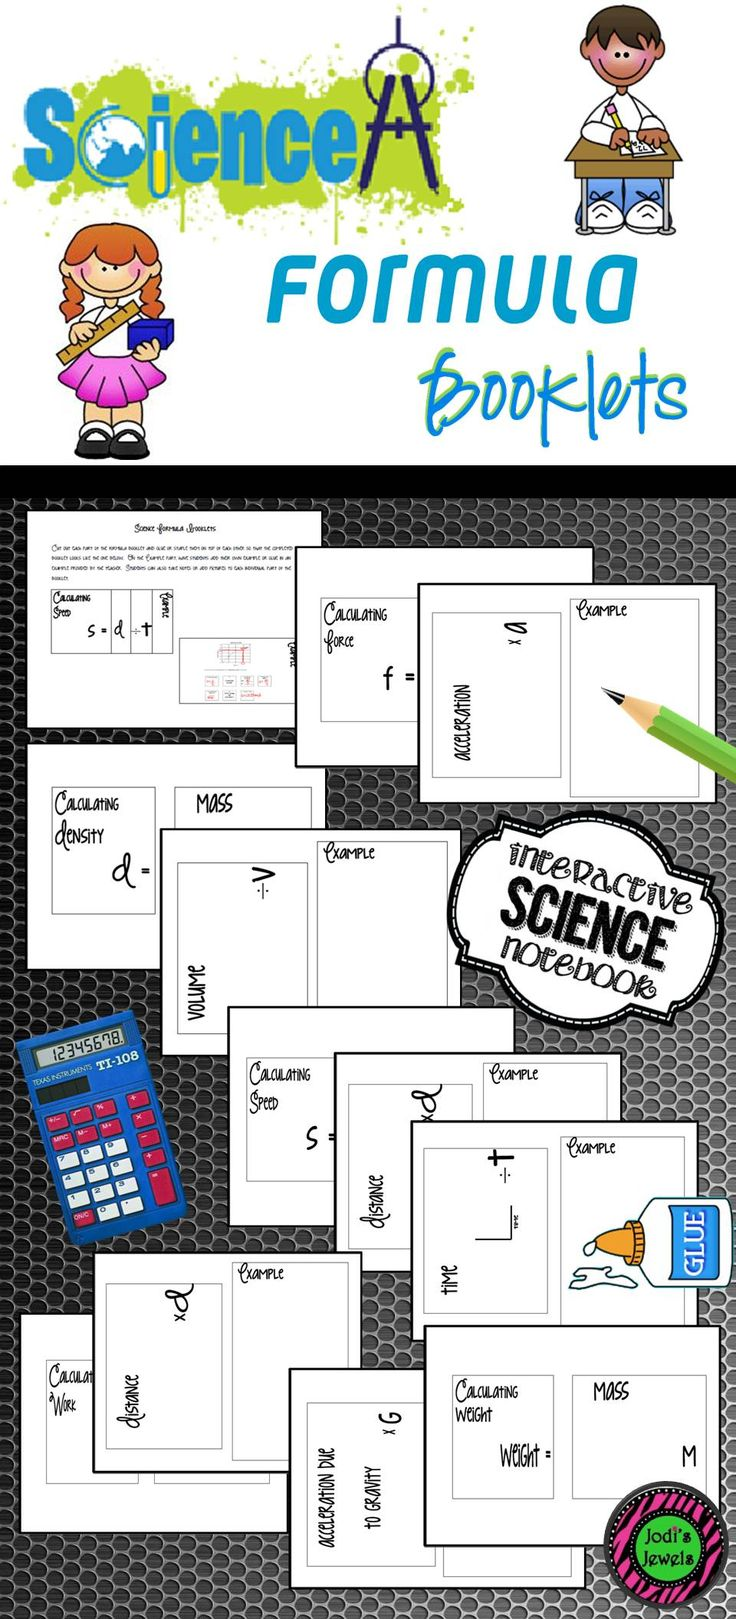 Students will create science formula booklets with this interactive notebook activity. Each part of the booklet contains one component of a formula for calculating speed, work, force, weight, and density. Students can add notes or drawings to represent each component. The example part of the booklet can be student written example or a copy of a problem given by the teacher. Visit Jodi's Jewels today!